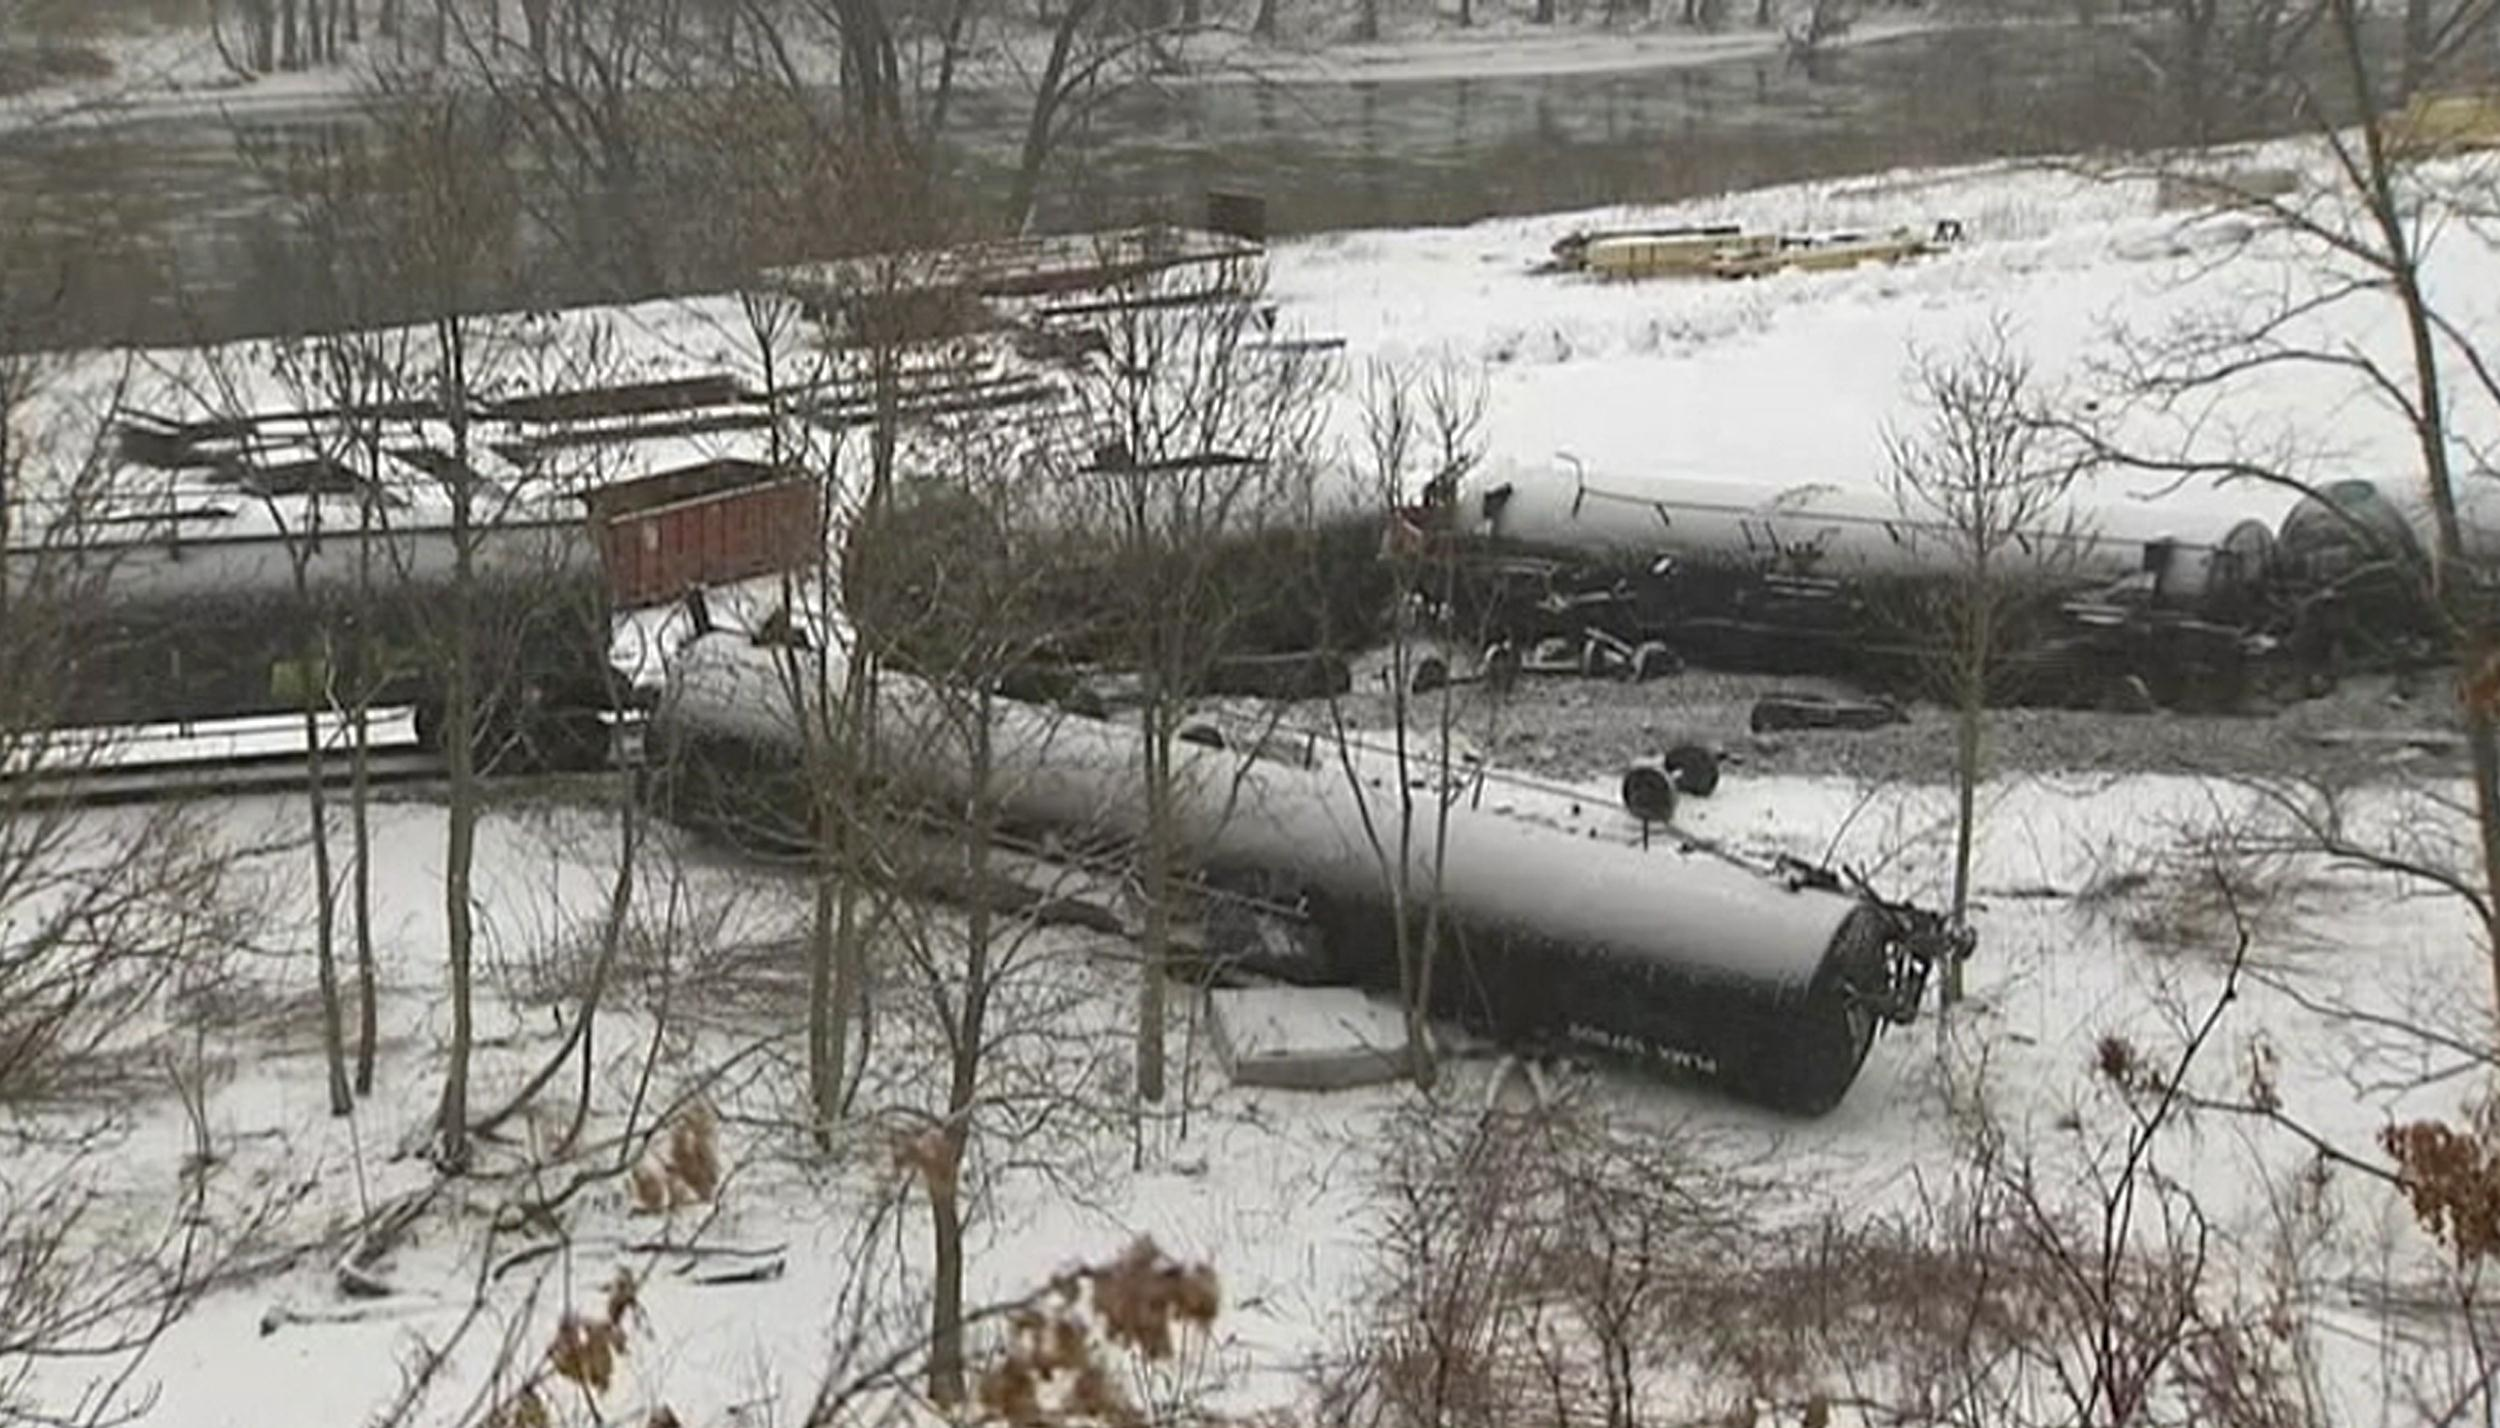 Image: train derail